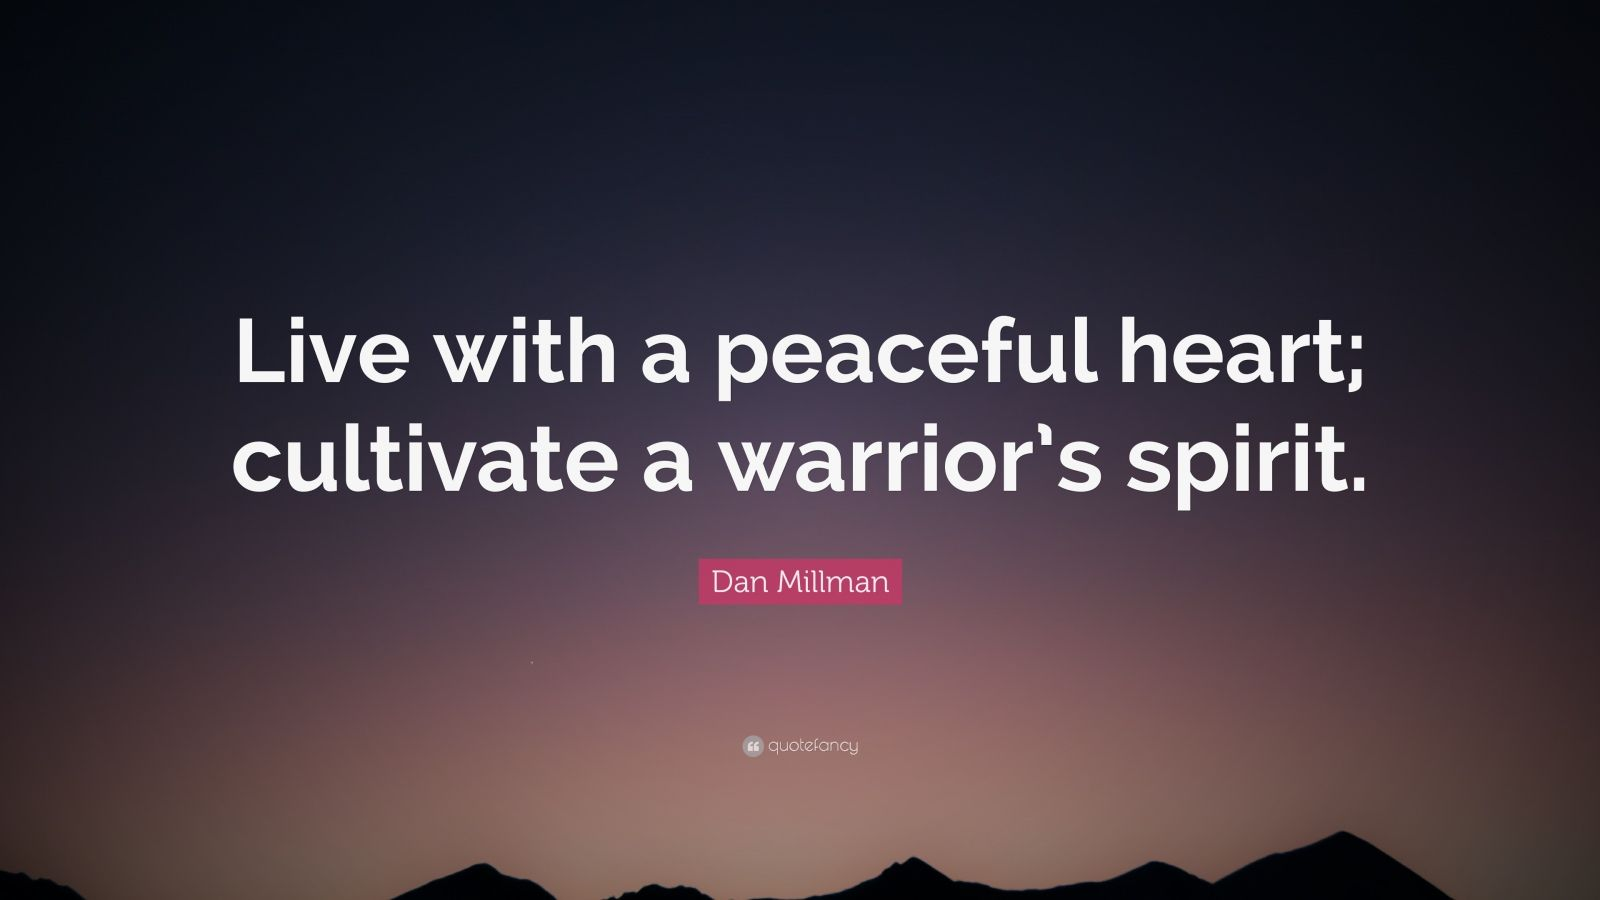 Depressing Wallpaper Quotes Dan Millman Quote Live With A Peaceful Heart Cultivate